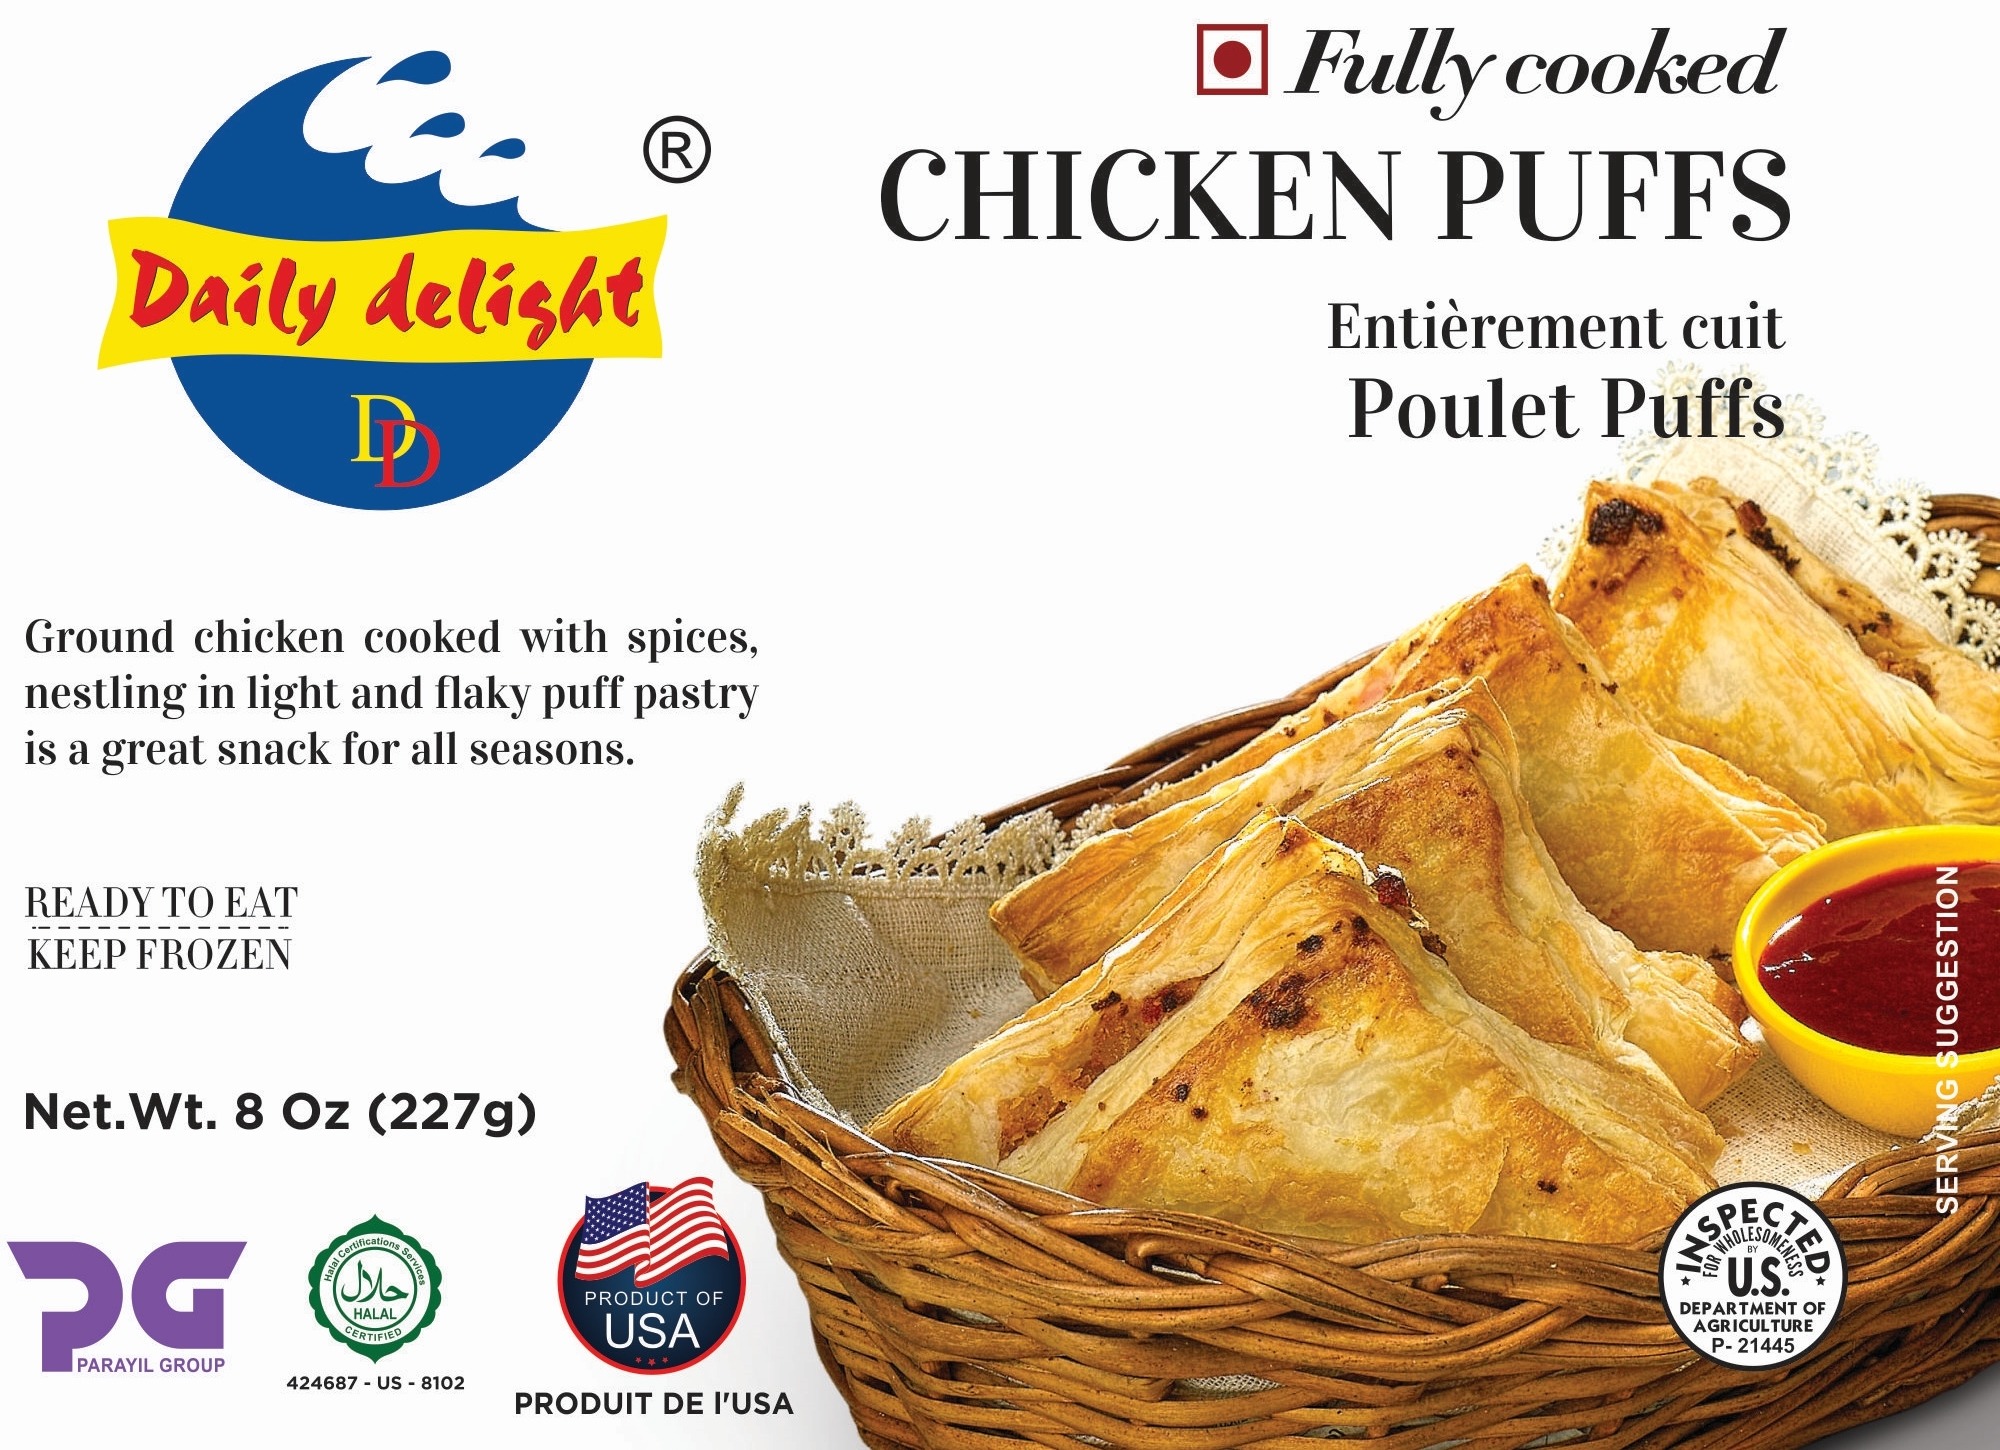 Daily Delight Chicken Puffs